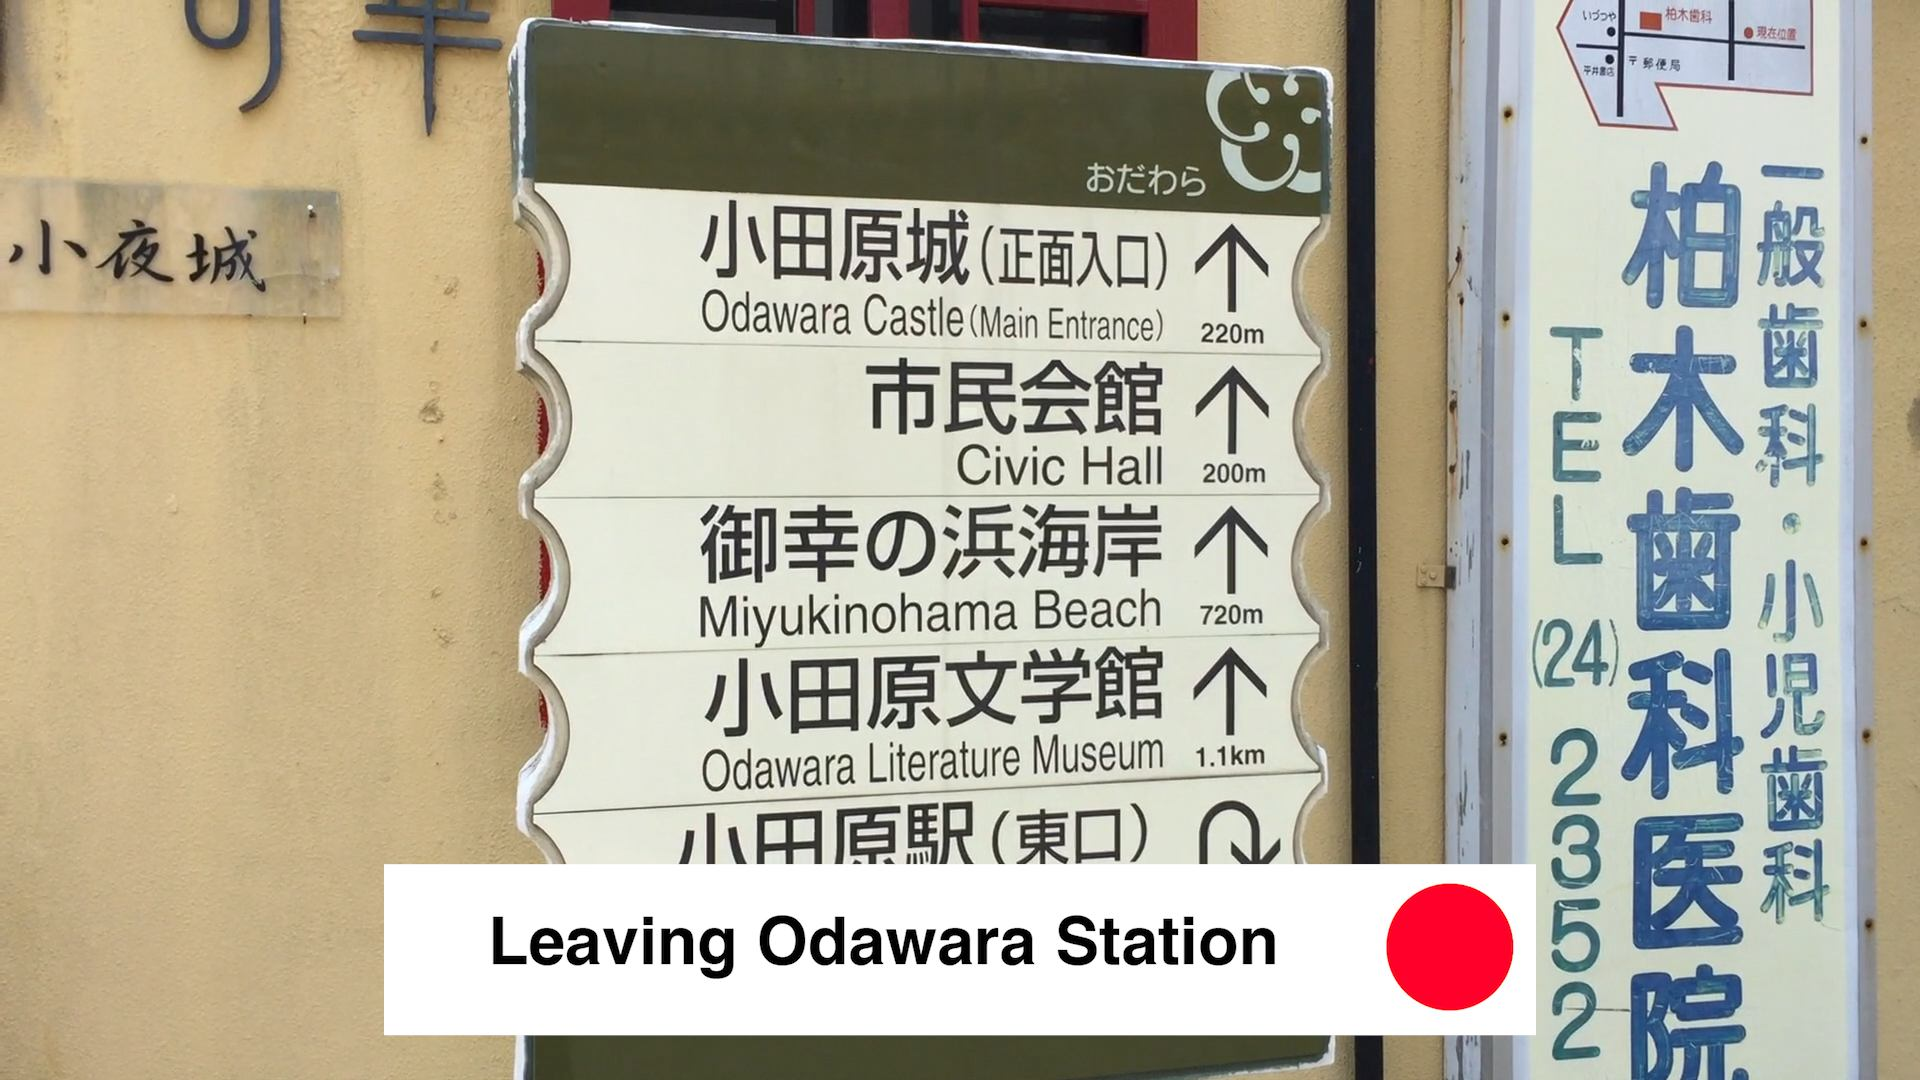 Odawara Station - Odawara Castle Japan Guide Review Video - 9 Reasons To See Odawara Castle Kanagawa Japan 🇯🇵 🏯 🌸